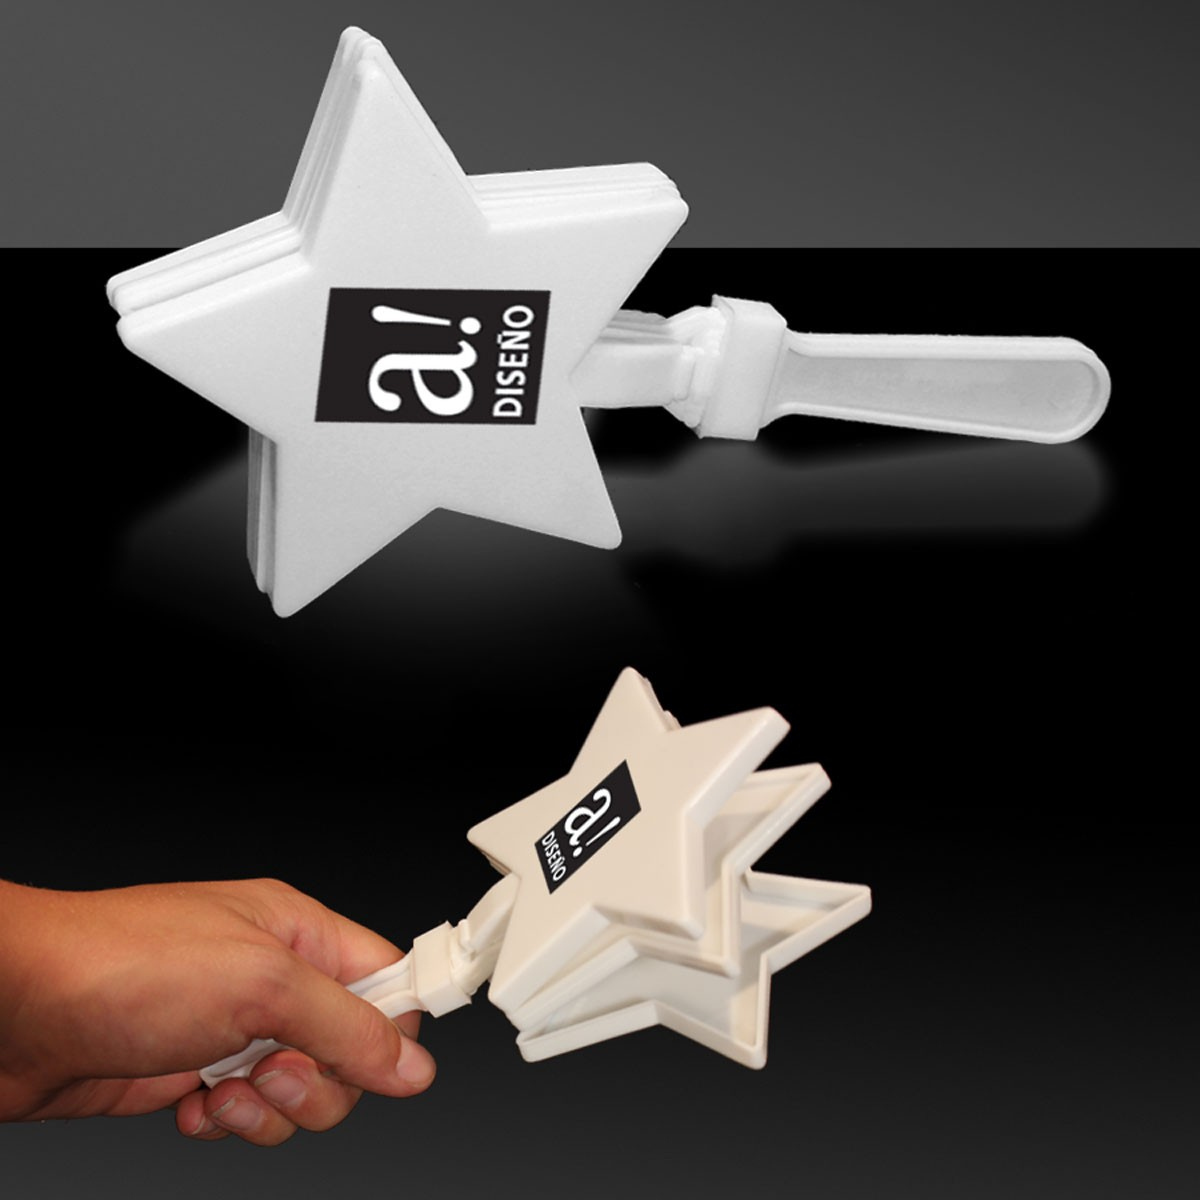 White Star Shape Hand Clappers